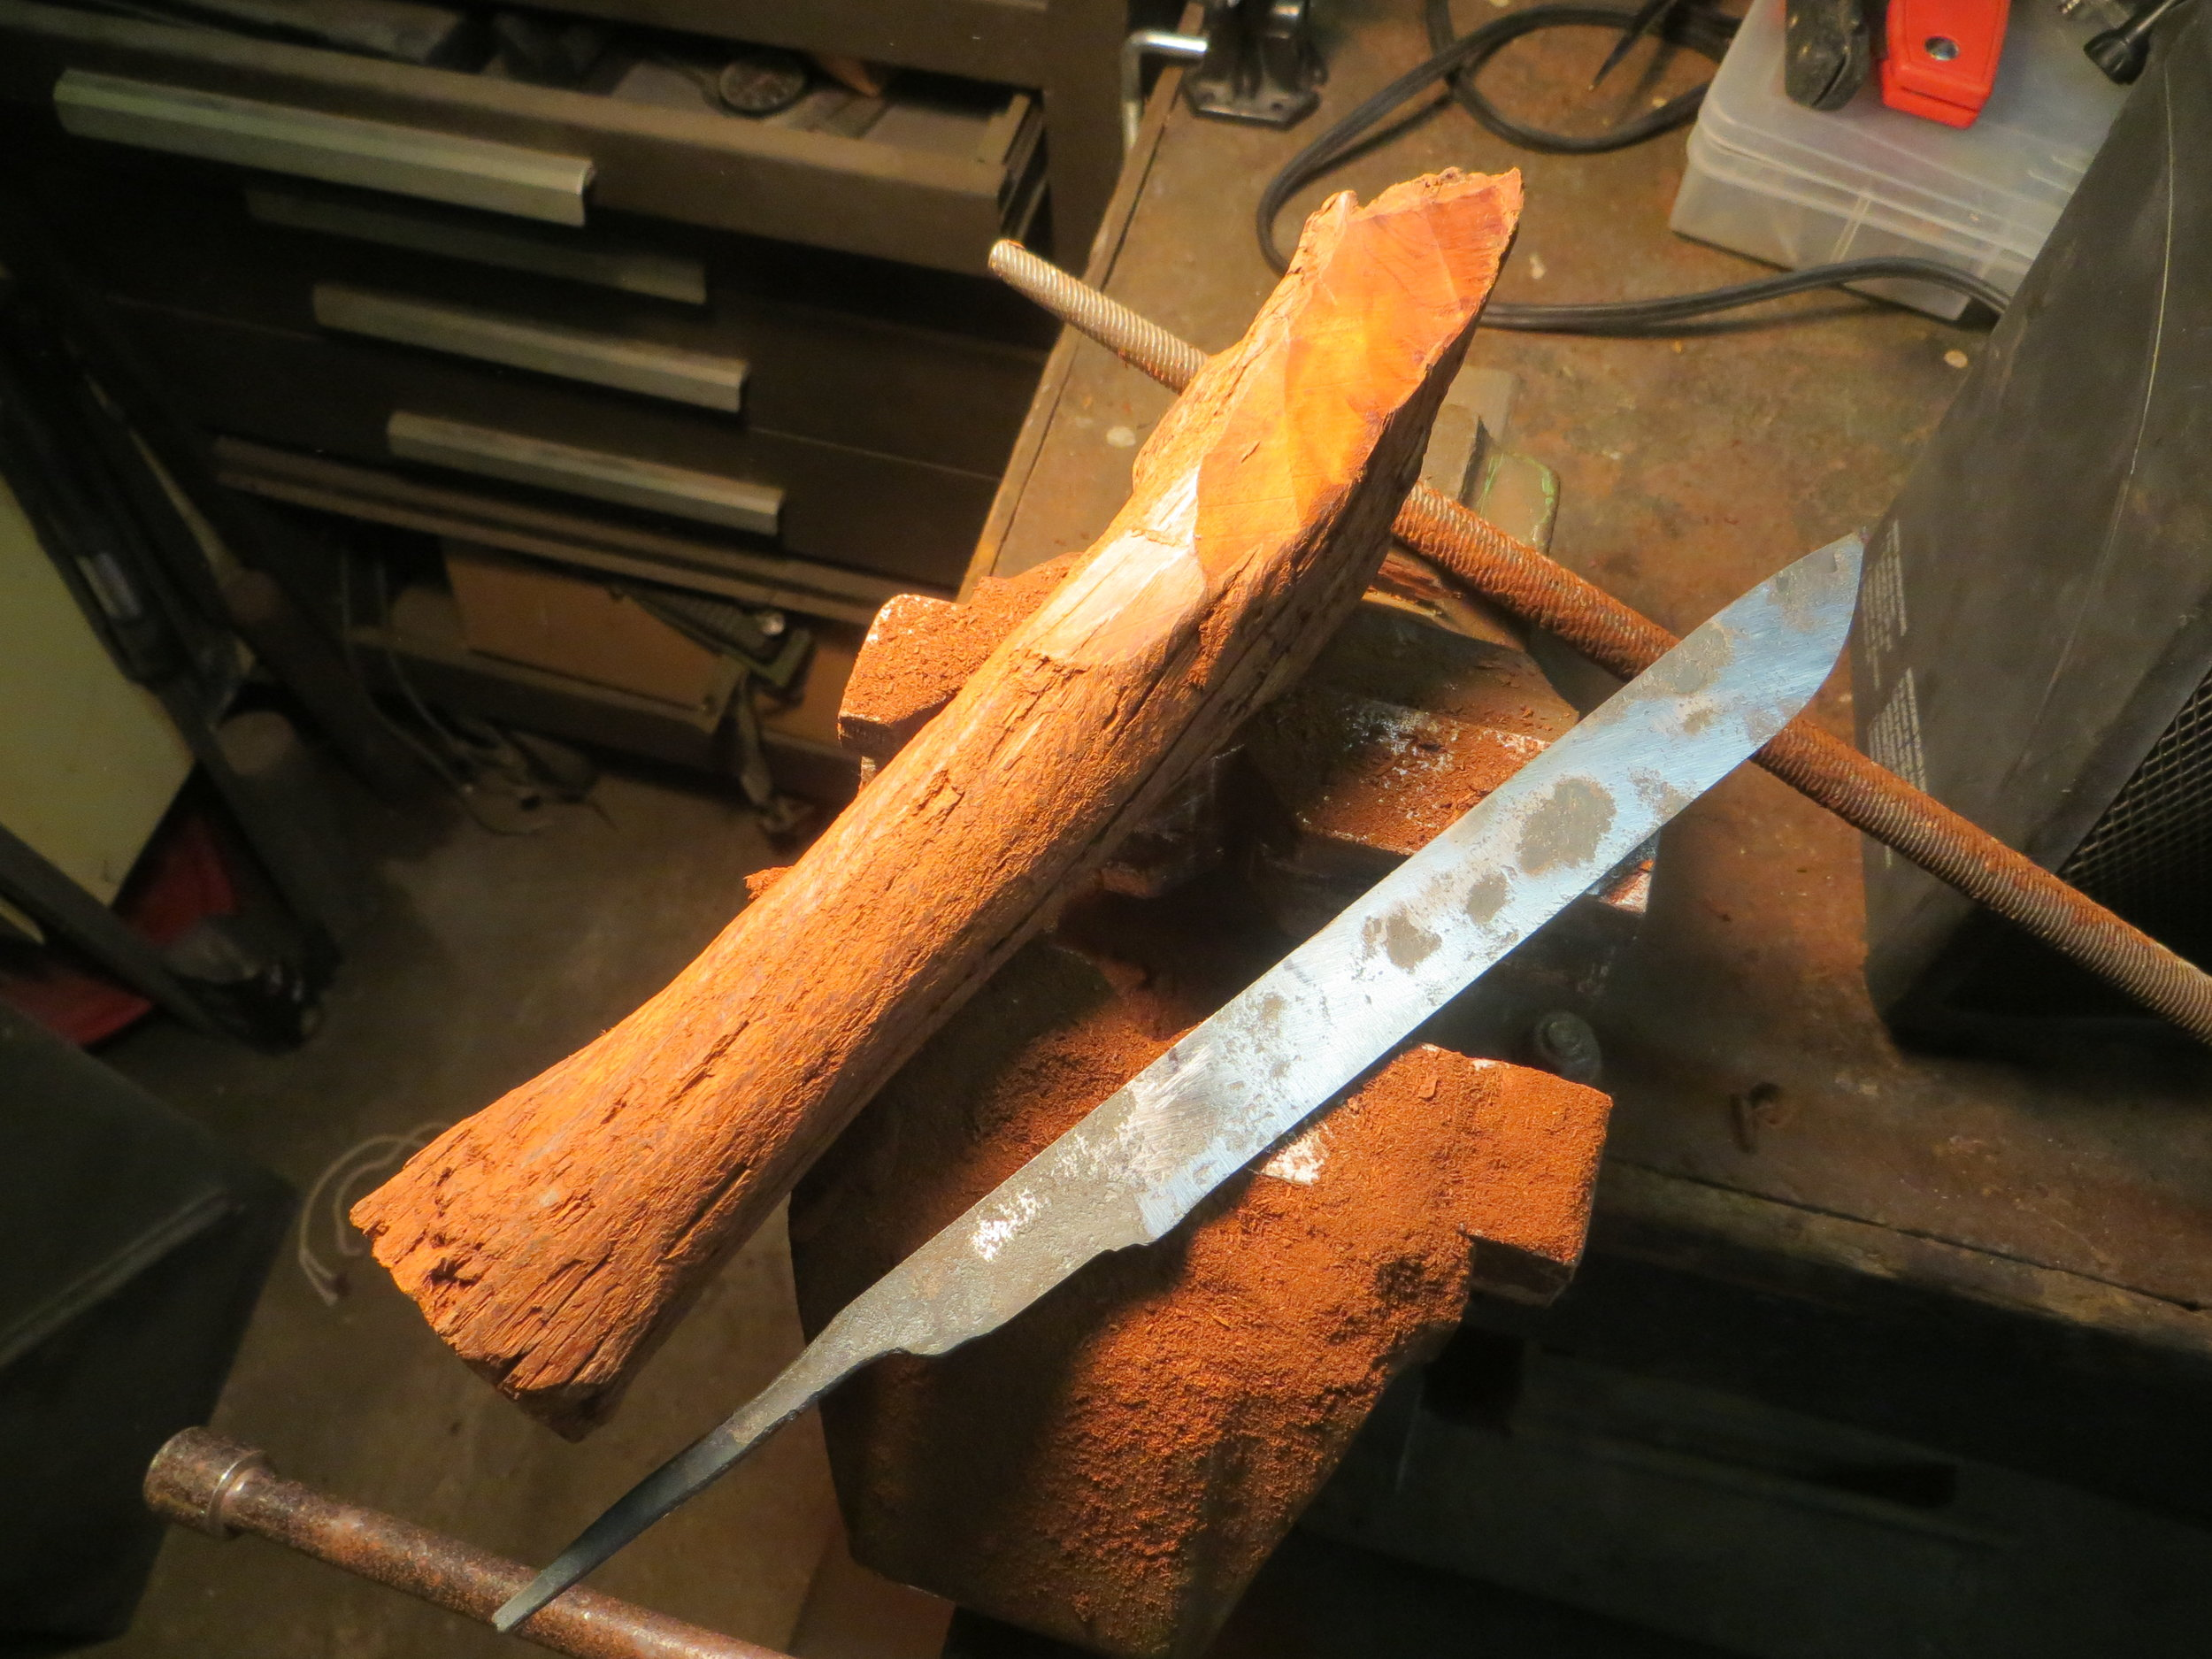 5 Prepping handle scales and forged file-blade.